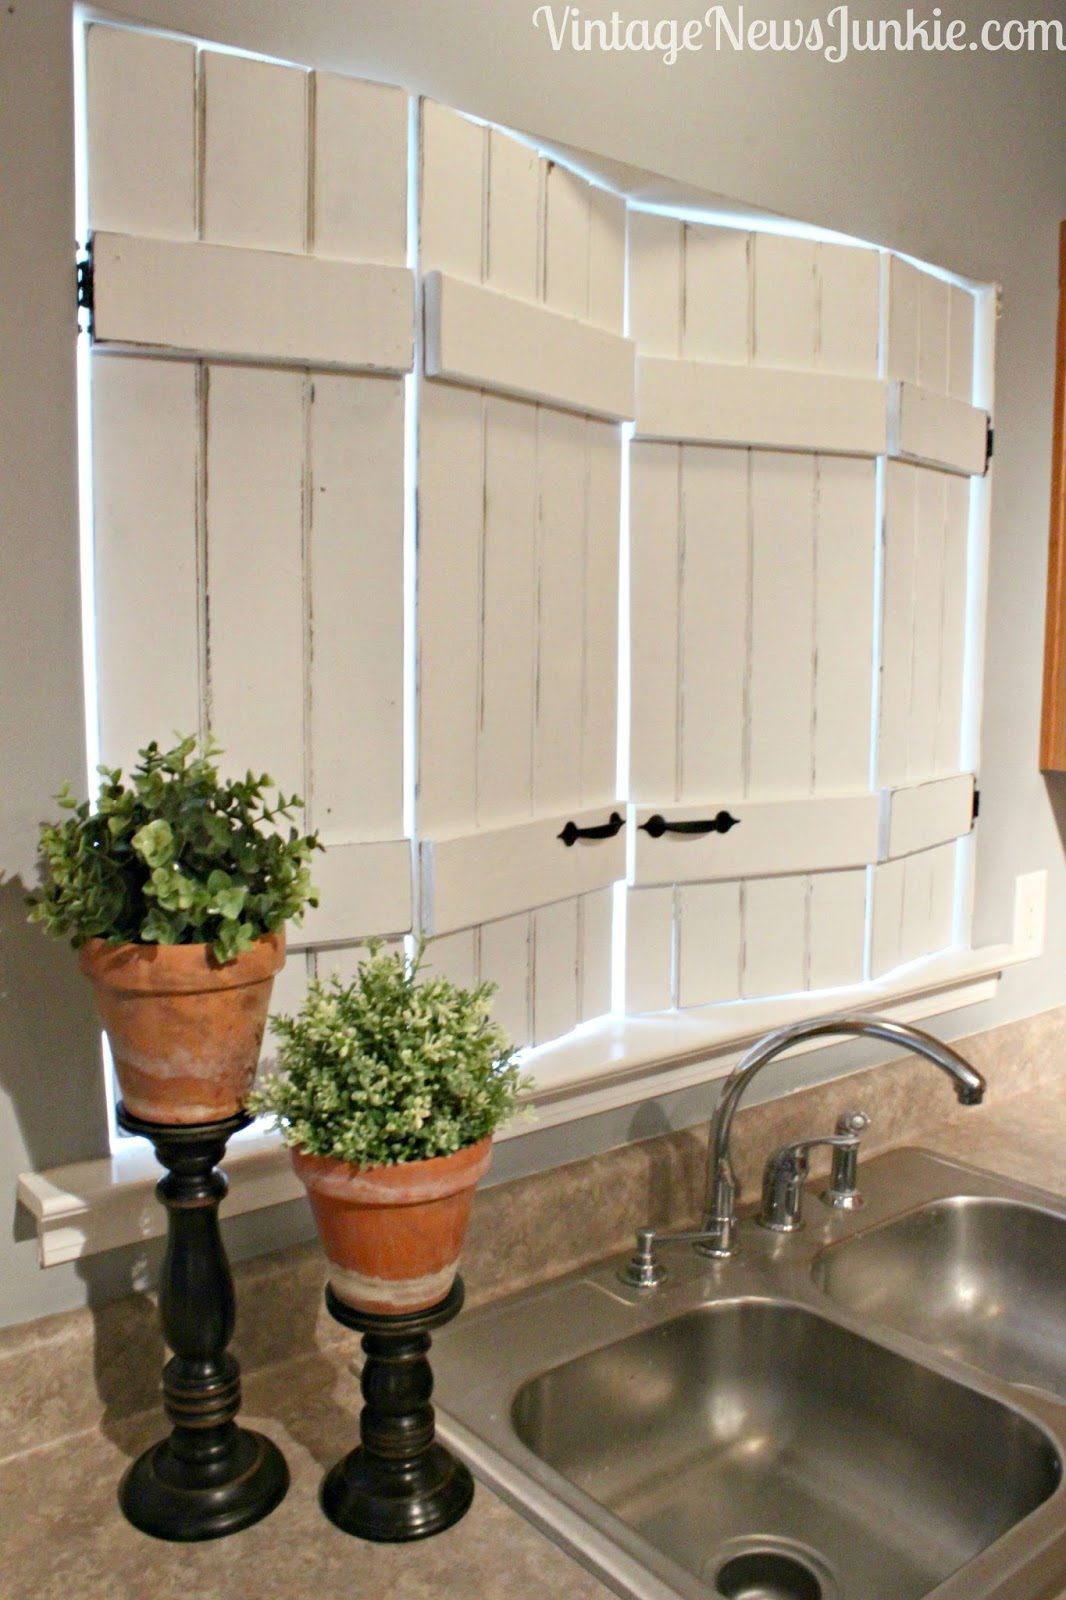 Make Your Own Shutters I Love That Junk Make Your Own Charming Window Shutters Vintage